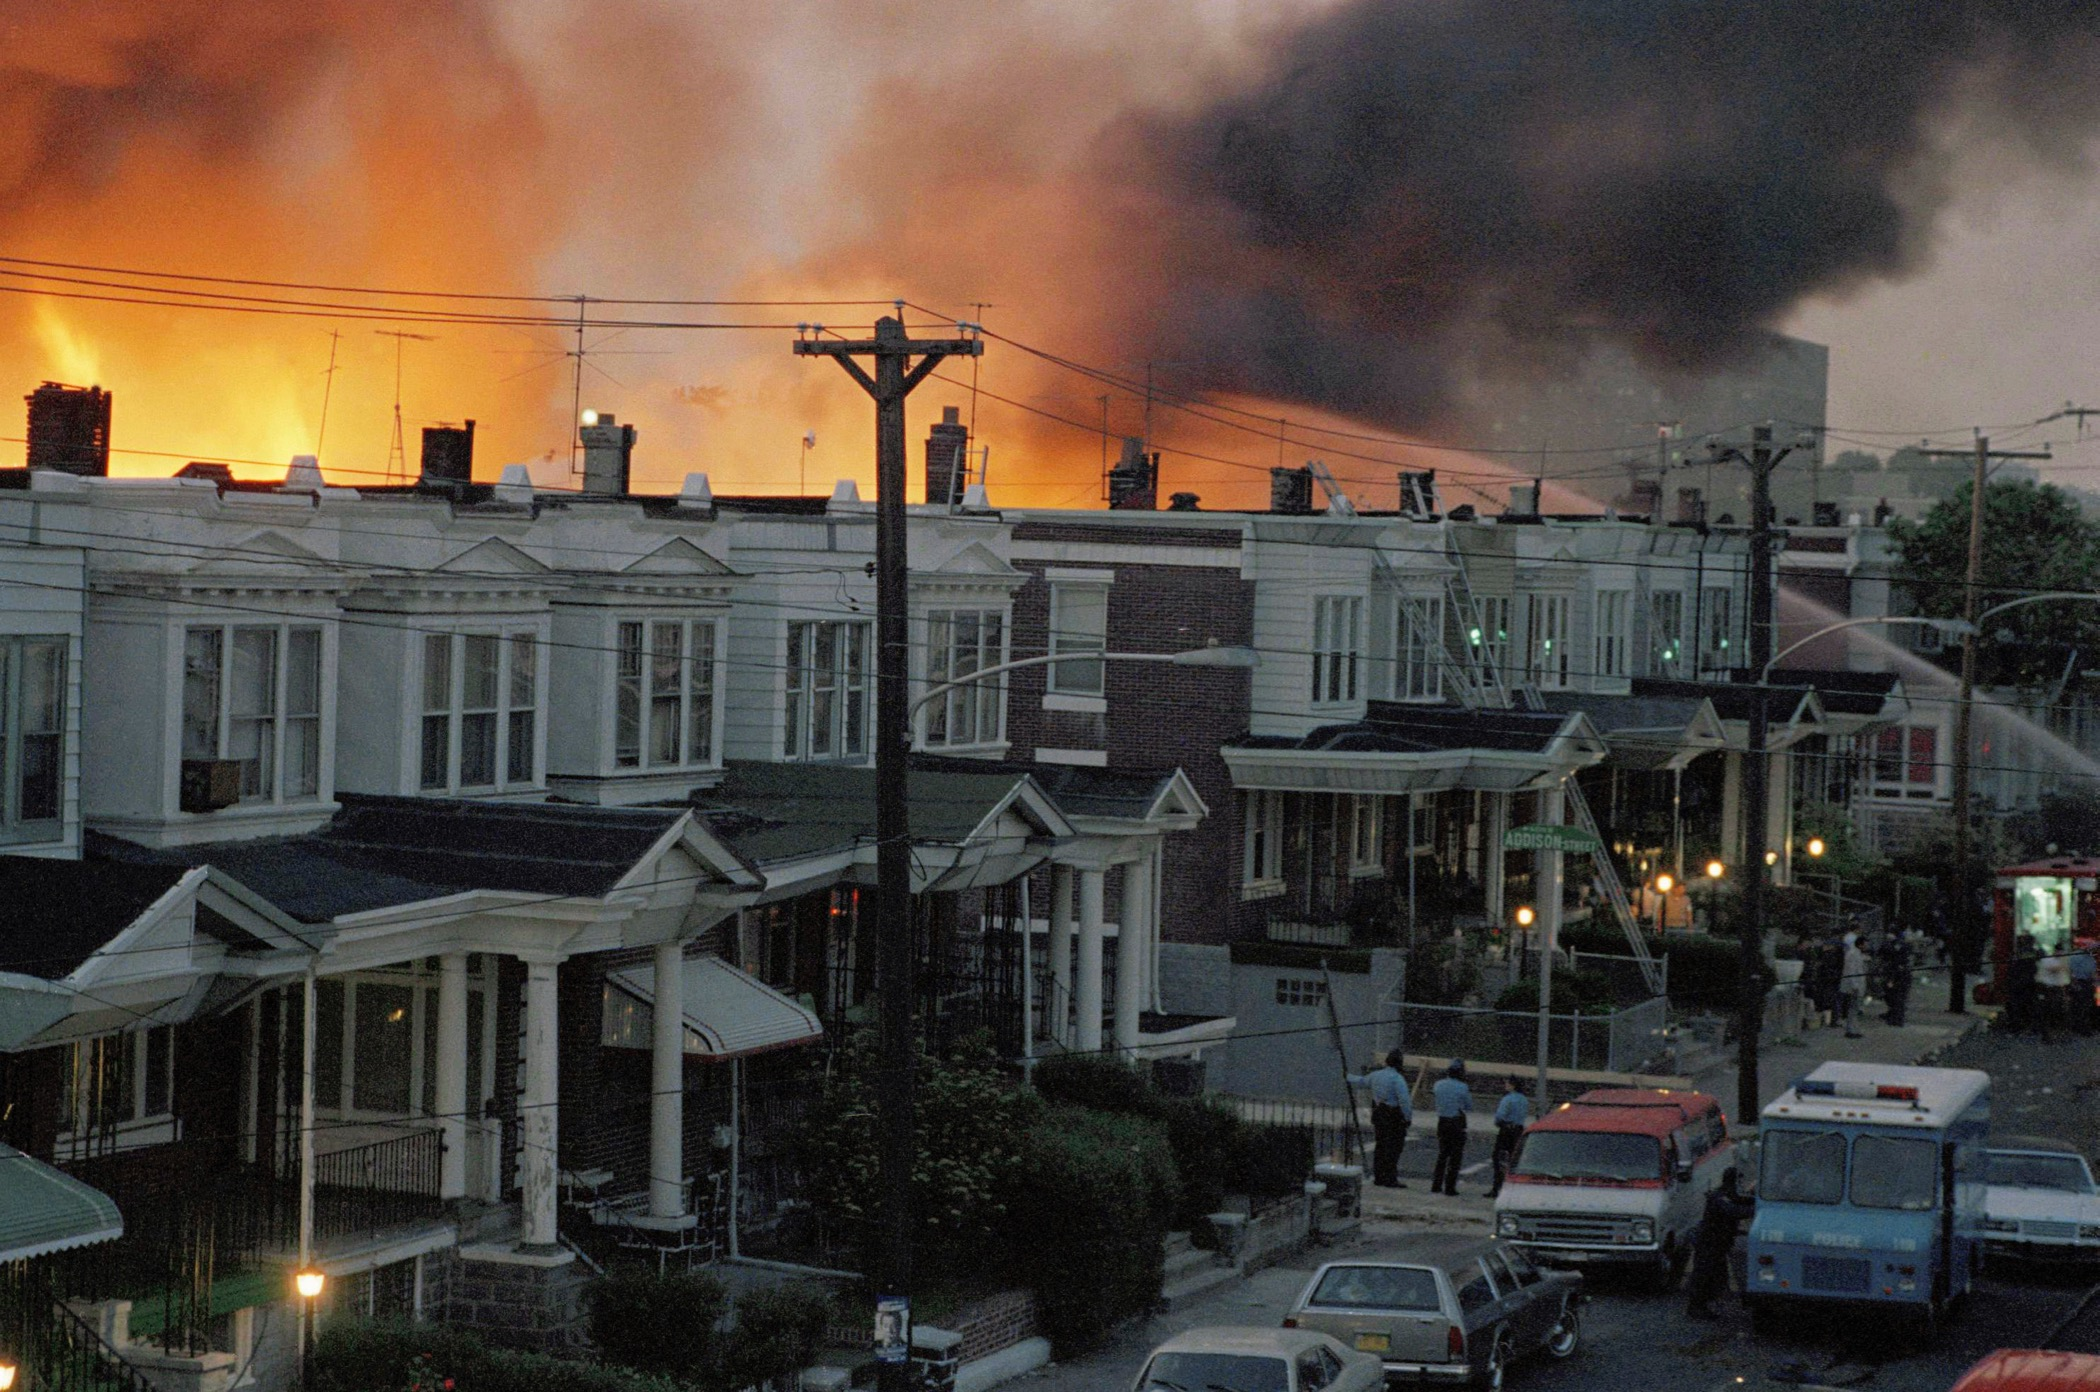 In this May, 1985 file photo, scores of rowhouses burn in a fire in the west Philadelphia neighborhood. Police dropped a bomb on the militant group MOVE's home on May 13, 1985 in an attempt to arrest members, leading to the burning of scores of homes in the neighborhood. (AP Photo, File)